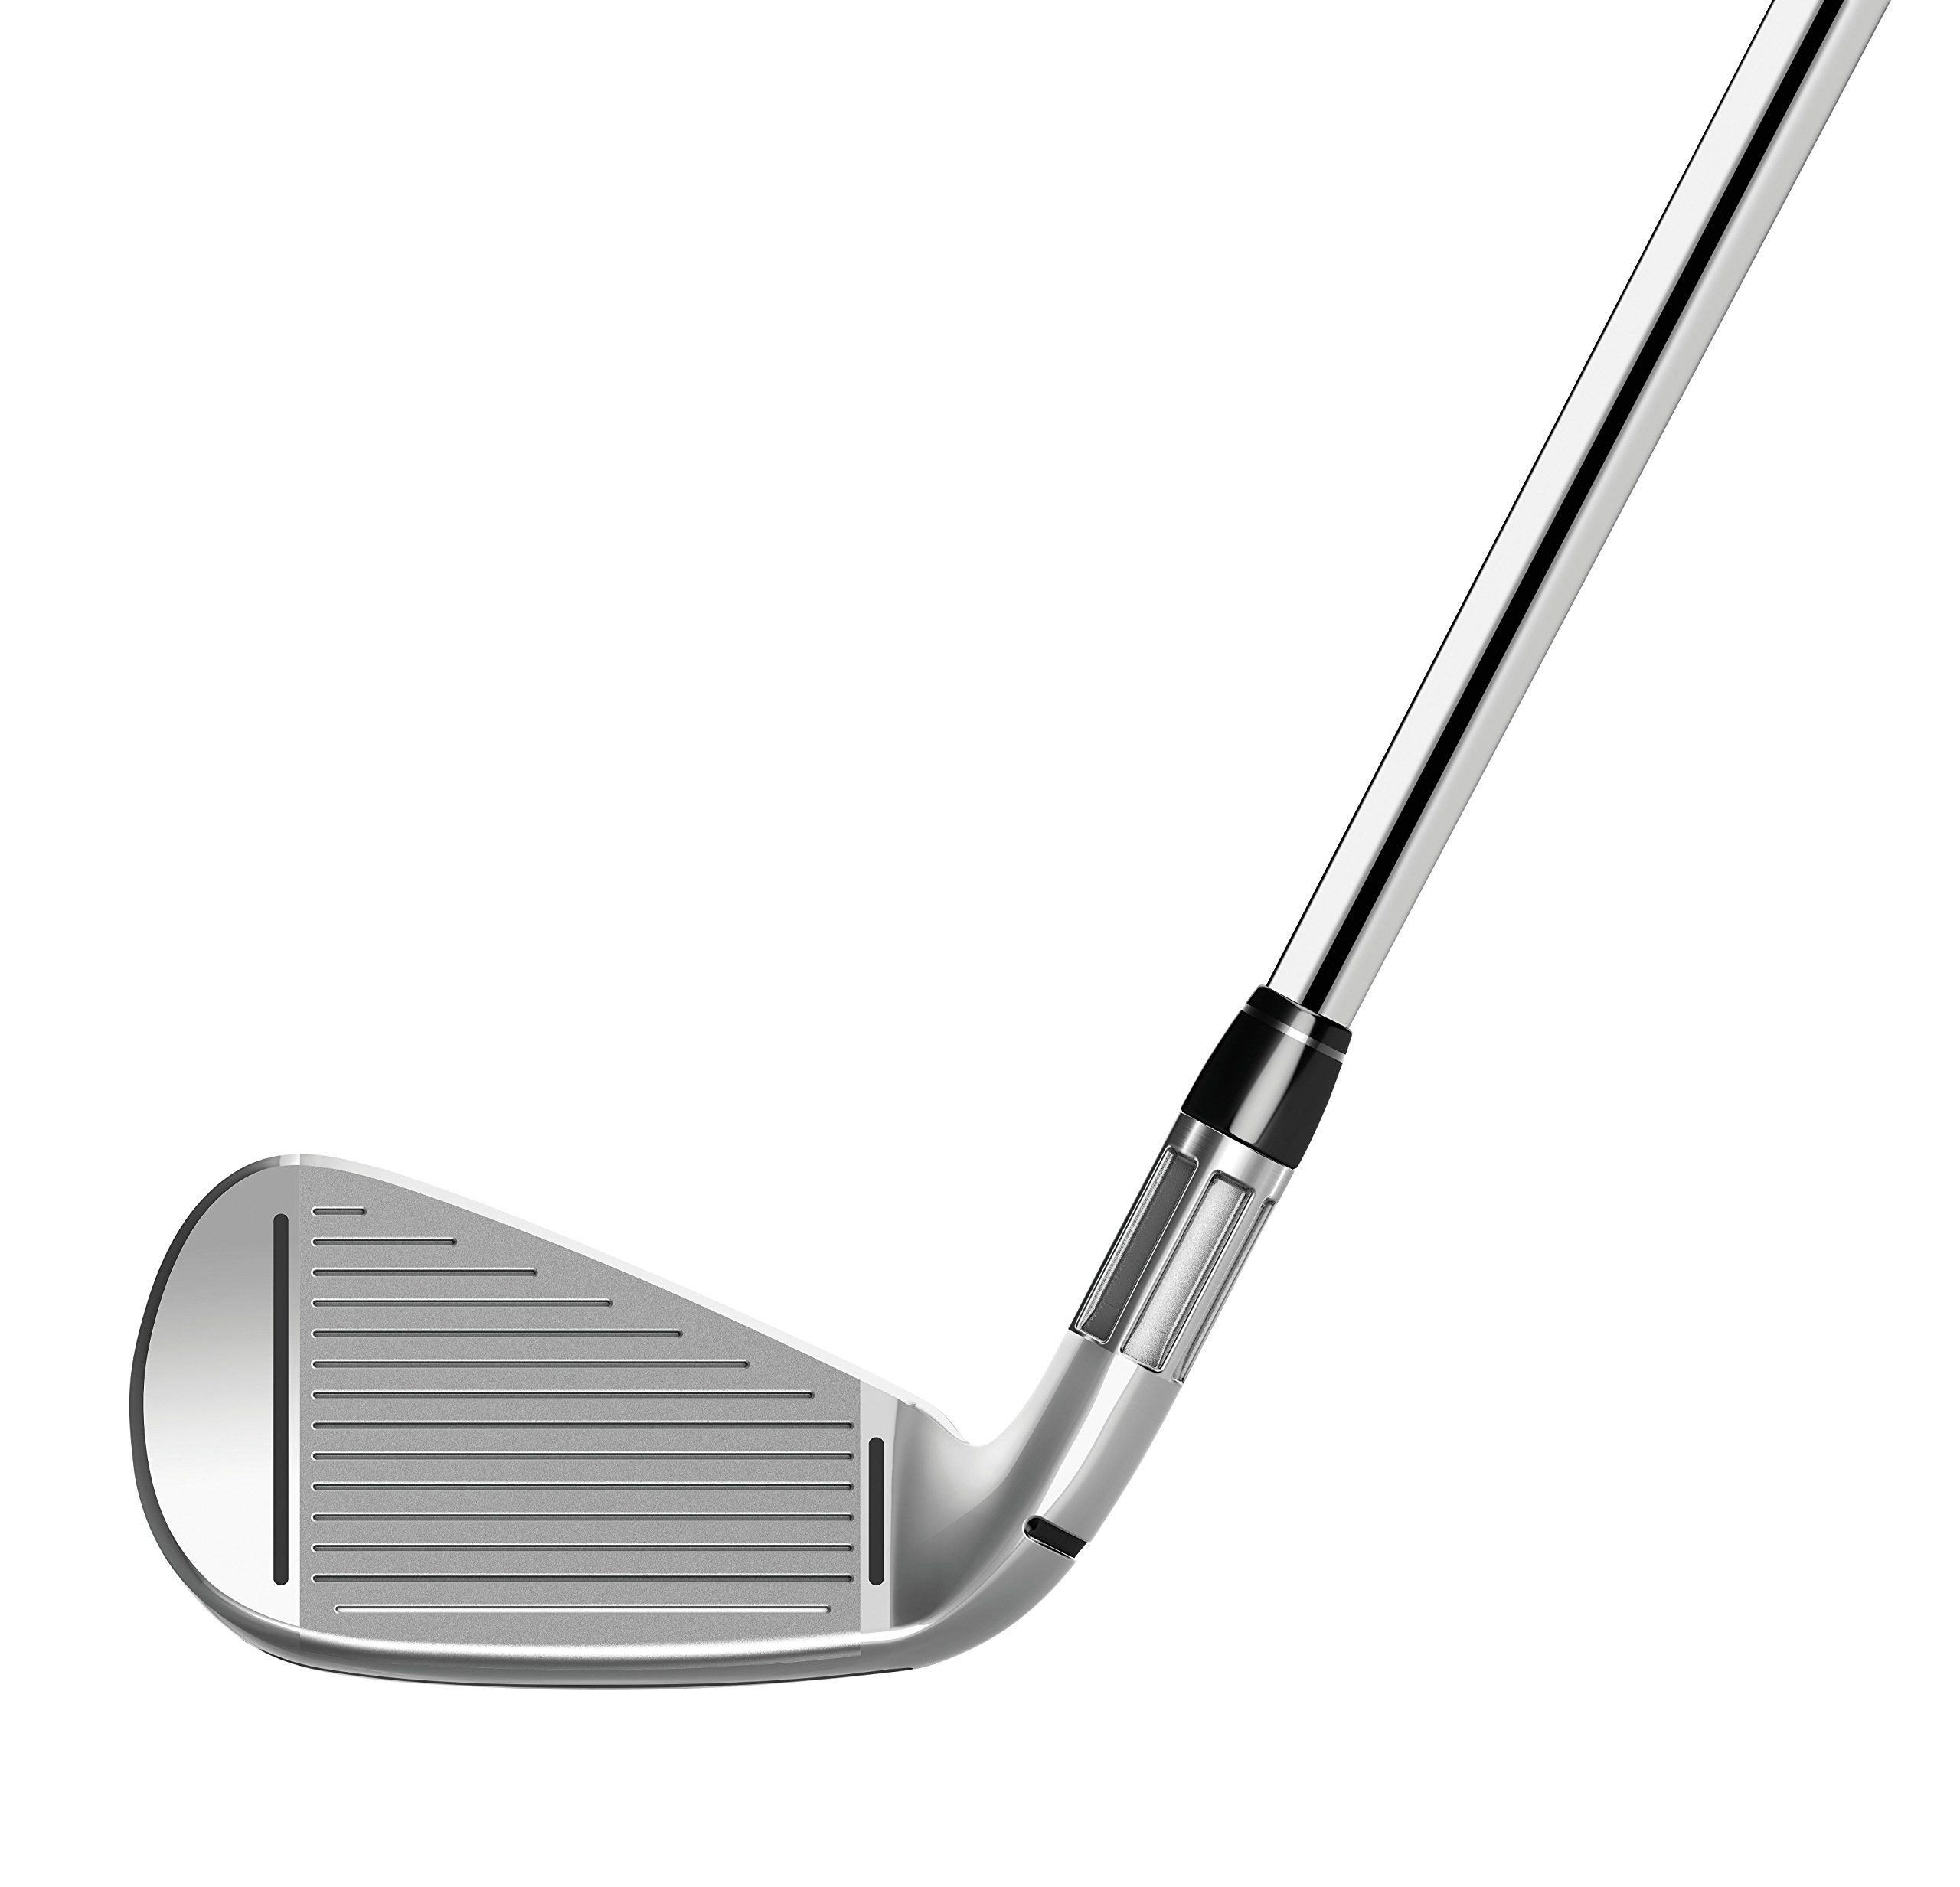 TaylorMade M4 Irons (4-PW, Steel Shaft, Right Hand, Stiff Flex) by TaylorMade (Image #3)